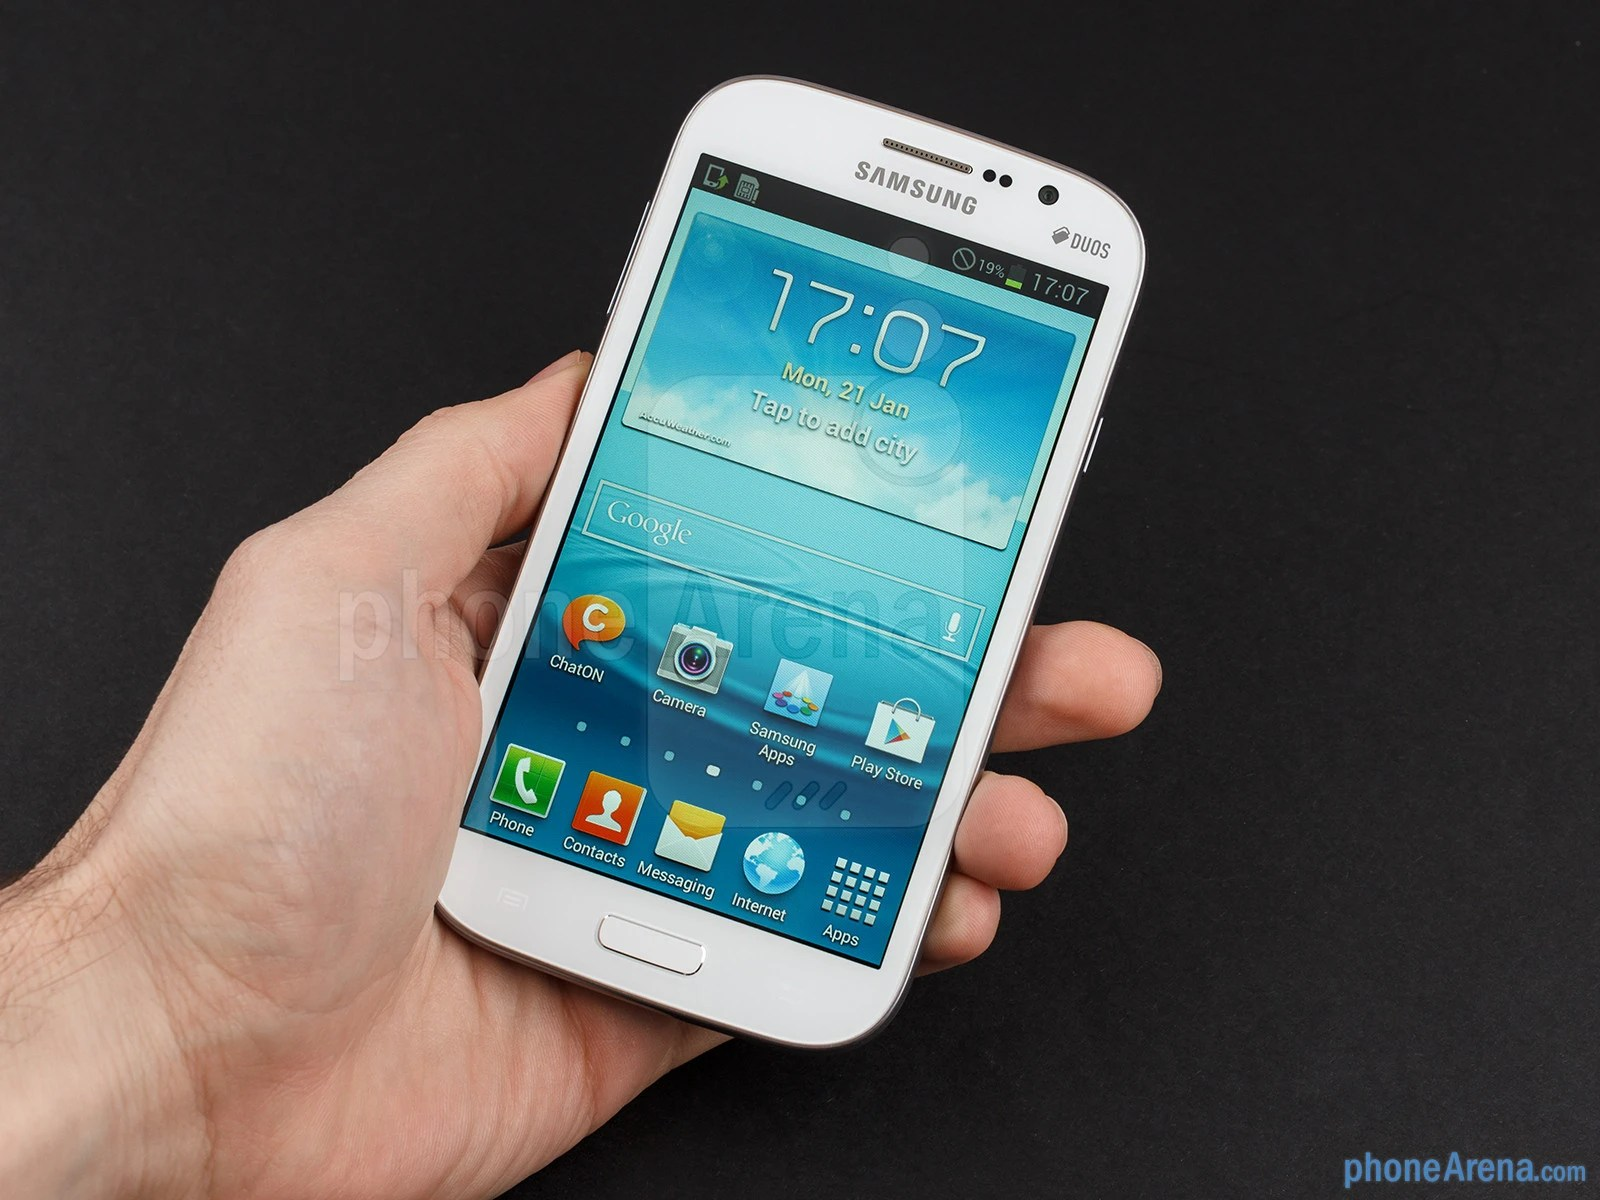 https://i2.wp.com/i-cdn.phonearena.com/images/reviews/126362-image/Samsung-Galaxy-Grand-Duos-Preview-003.jpg